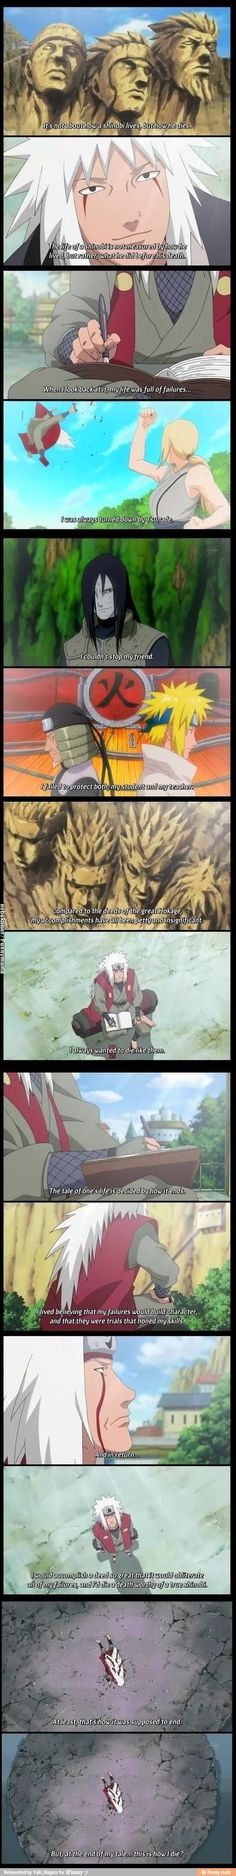 I would read Jiraiya's story. He tells the truth, even if it isn't glorious, and you root for him in the end.